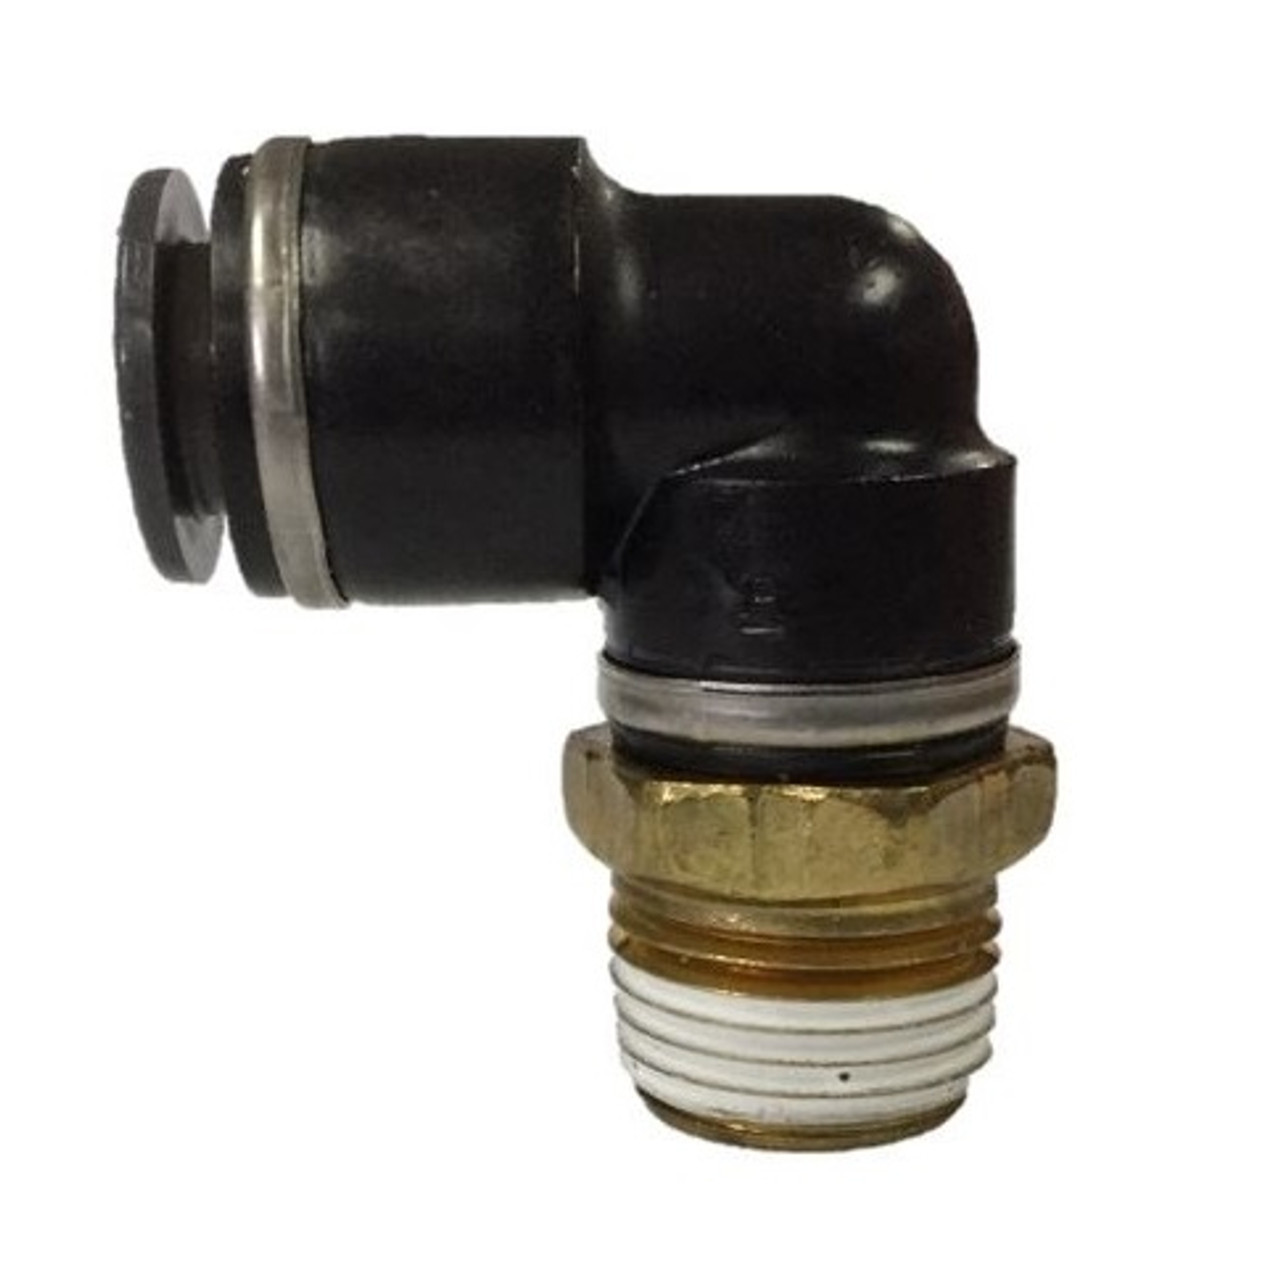 DOT Push to Connect Composite Fitting, 90° Male Elbow, C269PPSDOT Series